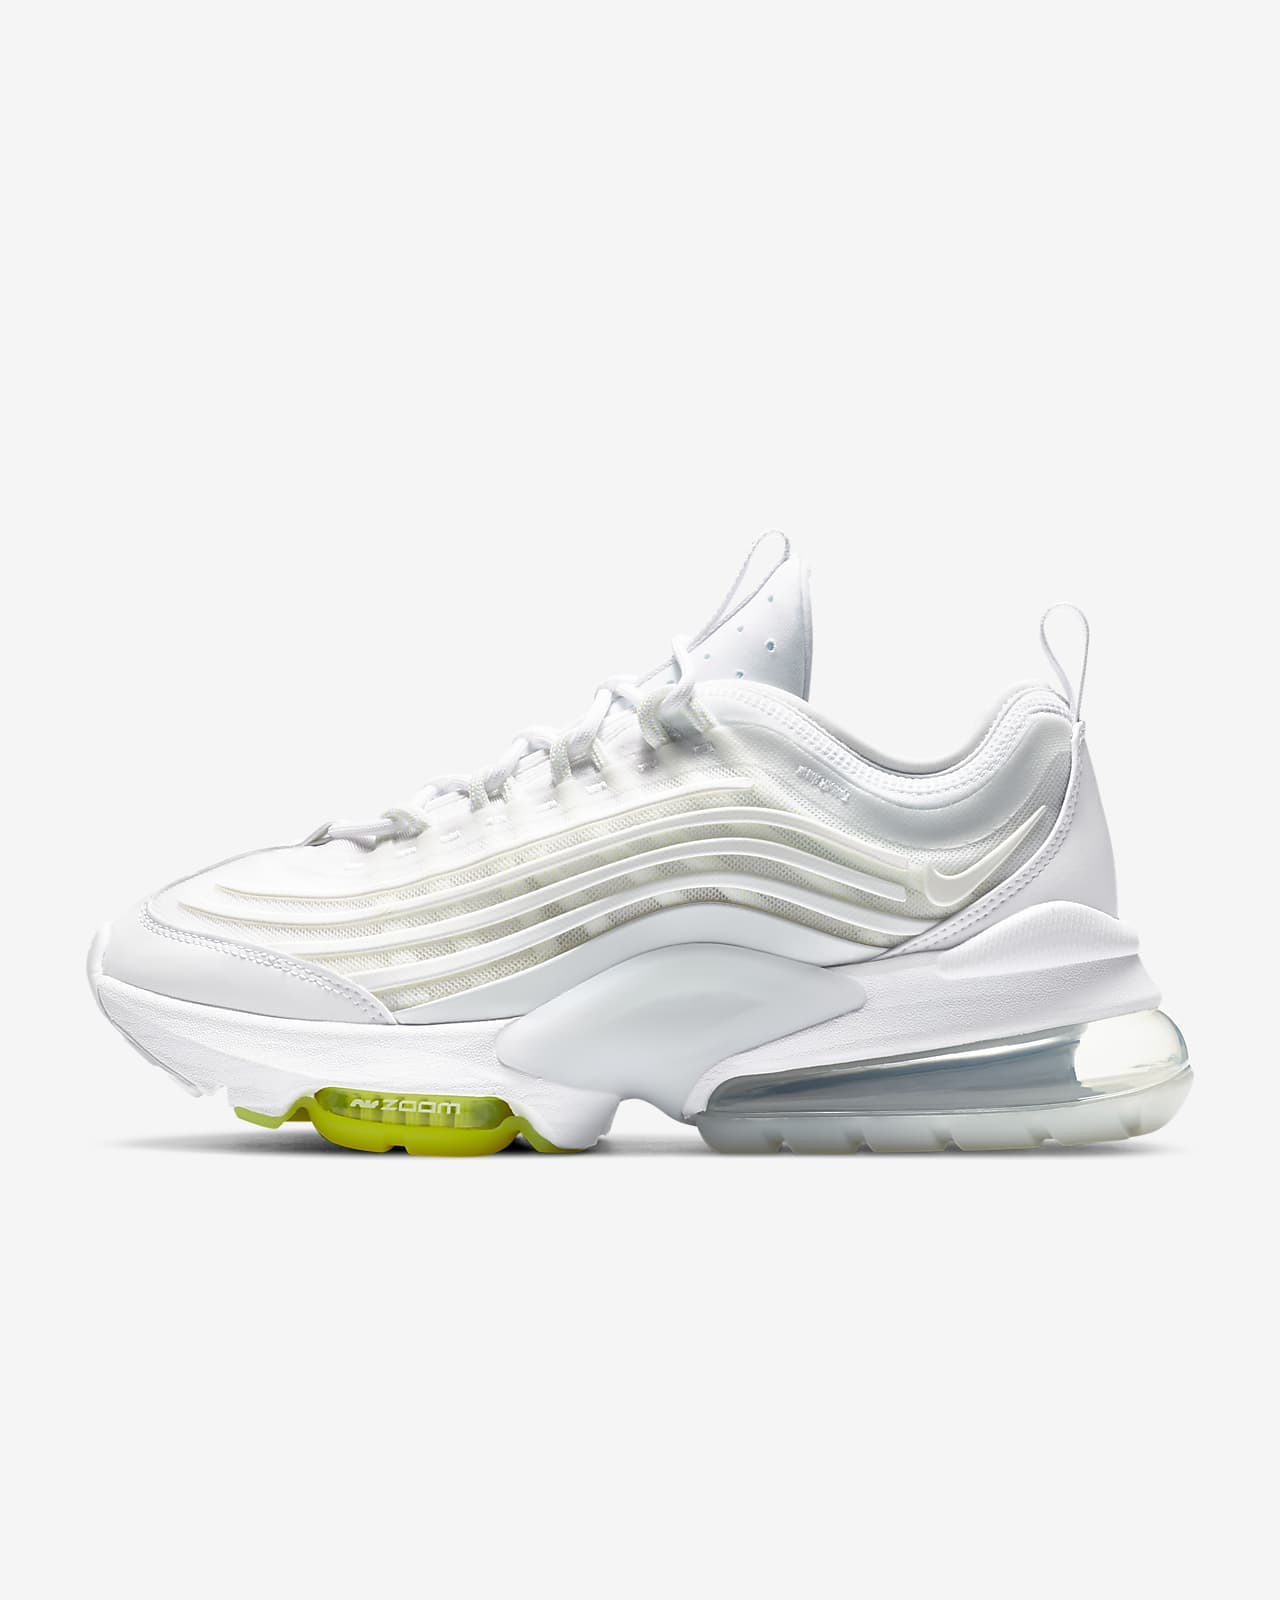 Nike Air Max ZM950 Women's Shoes